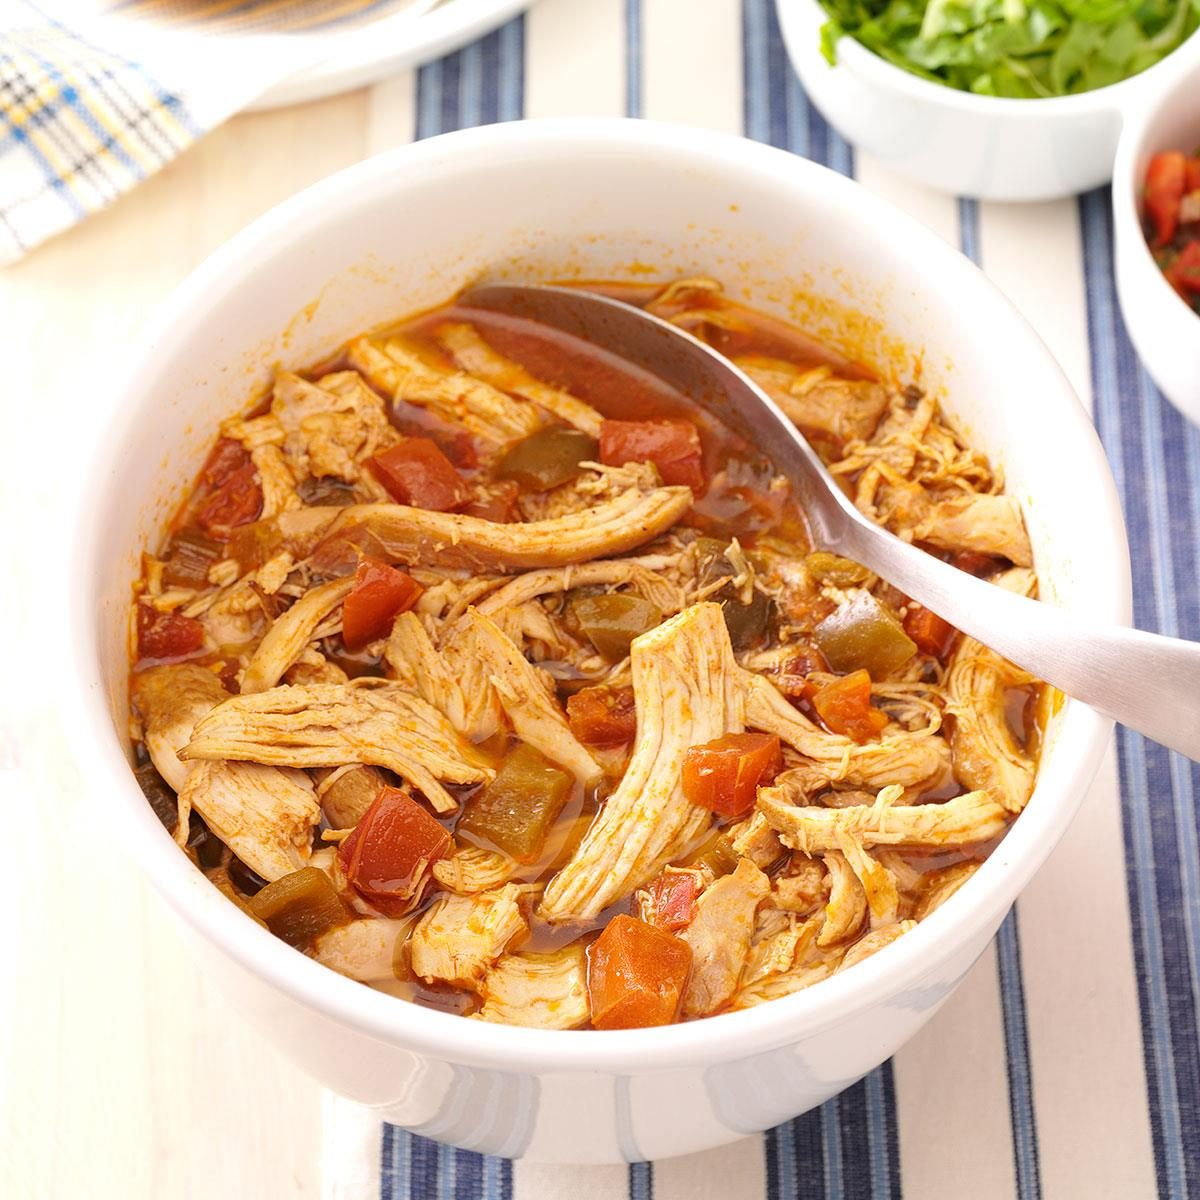 Mexican spicy shredded chicken recipe